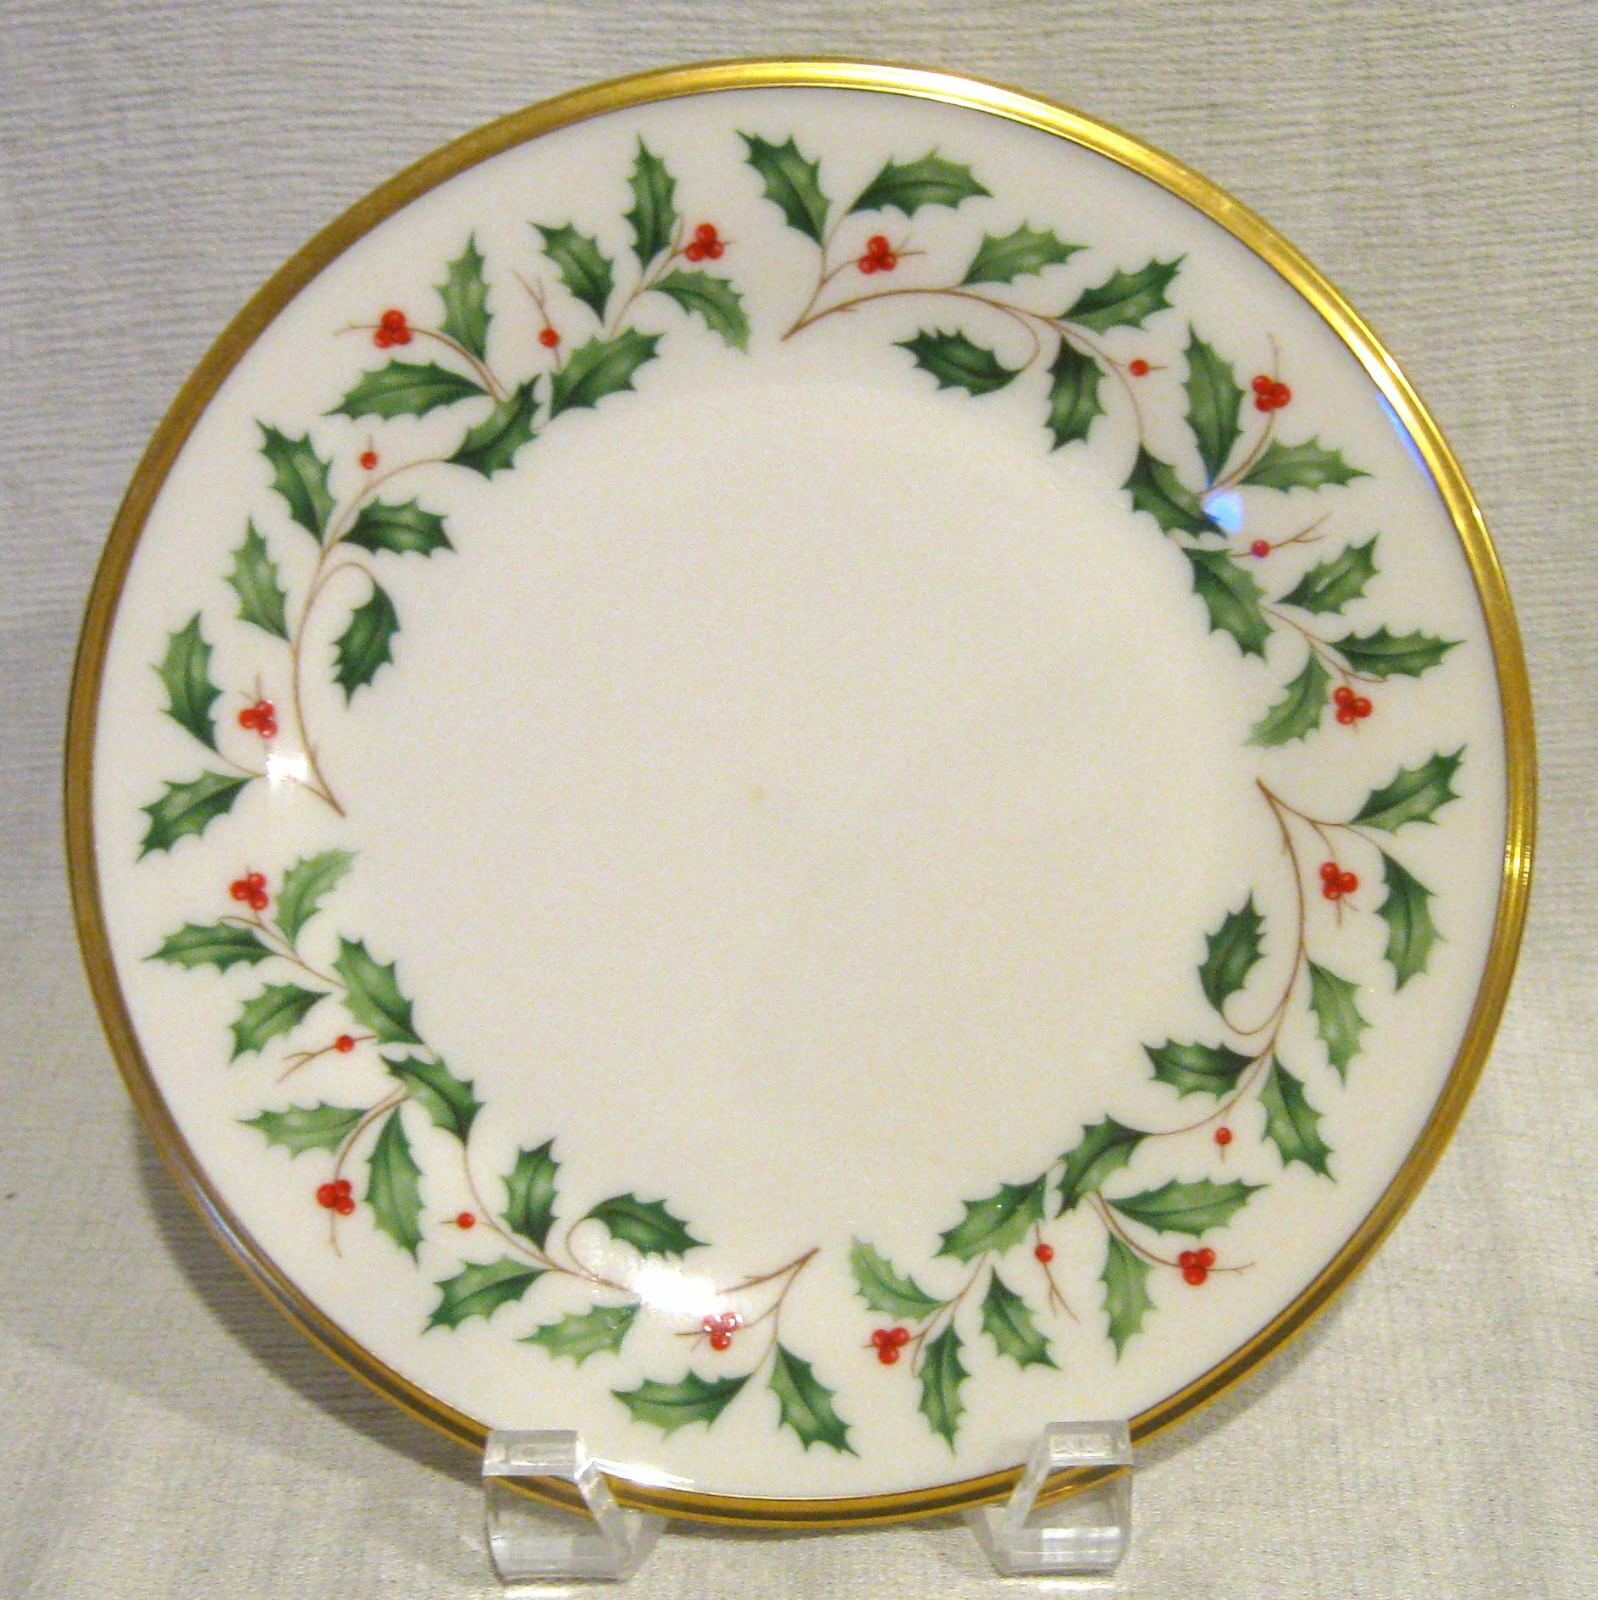 Lenox Holiday Dinner Plate 1 of 3Only 5 available ...  sc 1 st  PicClick & LENOX HOLIDAY Dinner Plate - $9.99 | PicClick